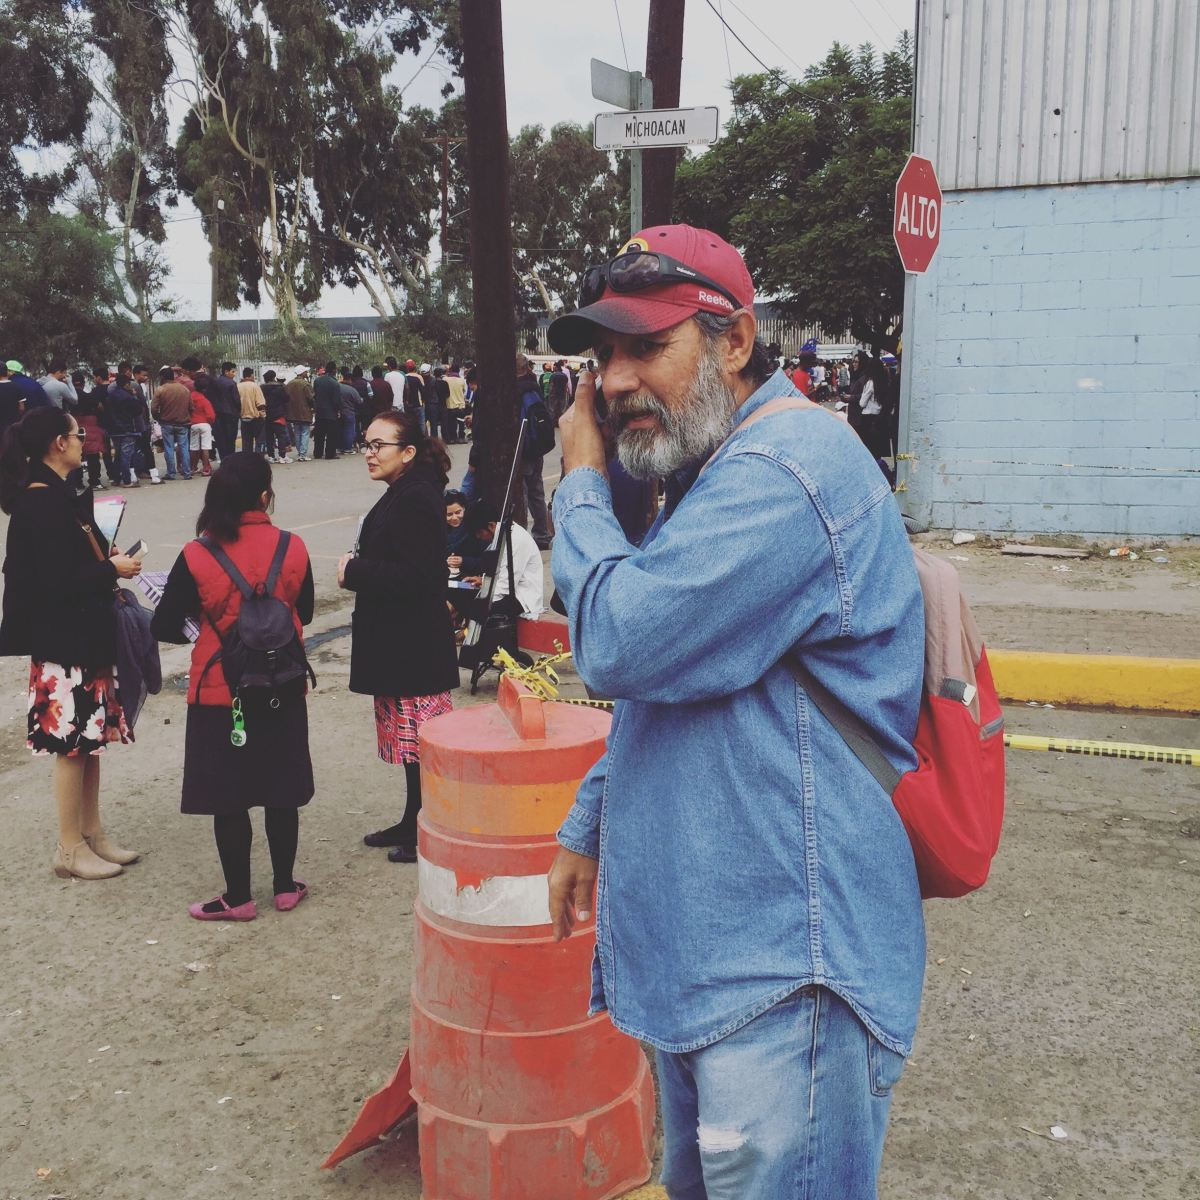 Felix, who volunteered to help Matt translate interviews from Spanish to English, takes a call in Tijuana.